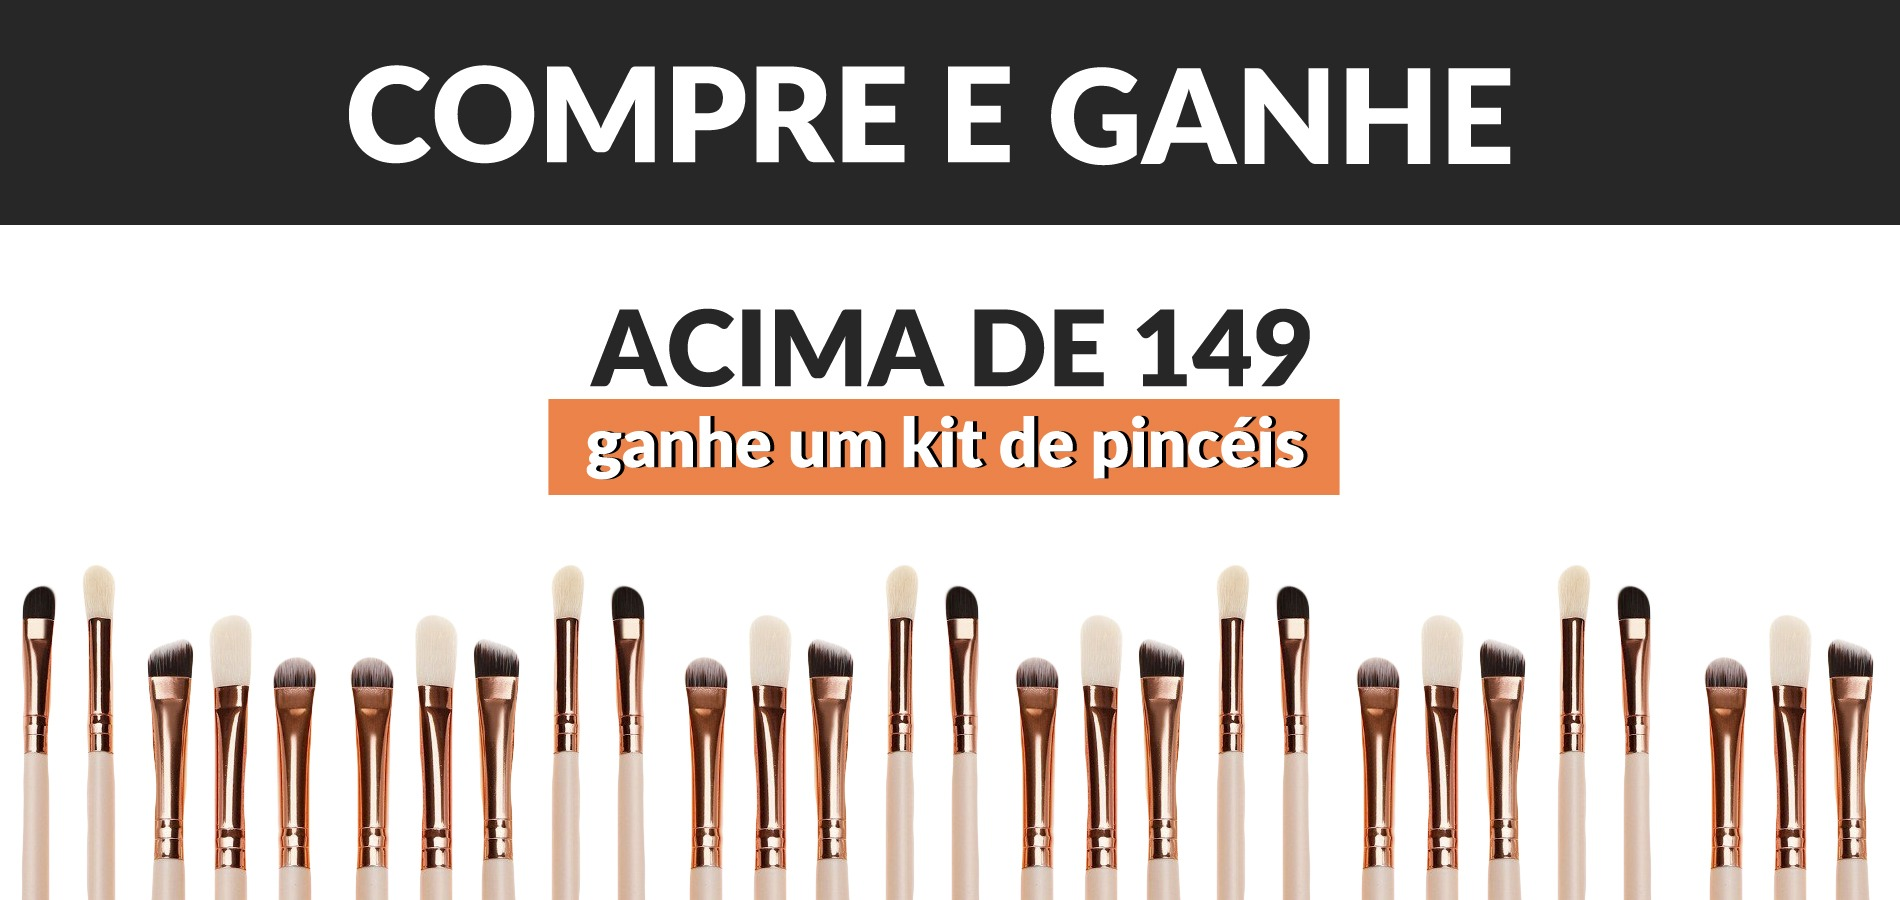 Ofertas Black Friday com Brindes